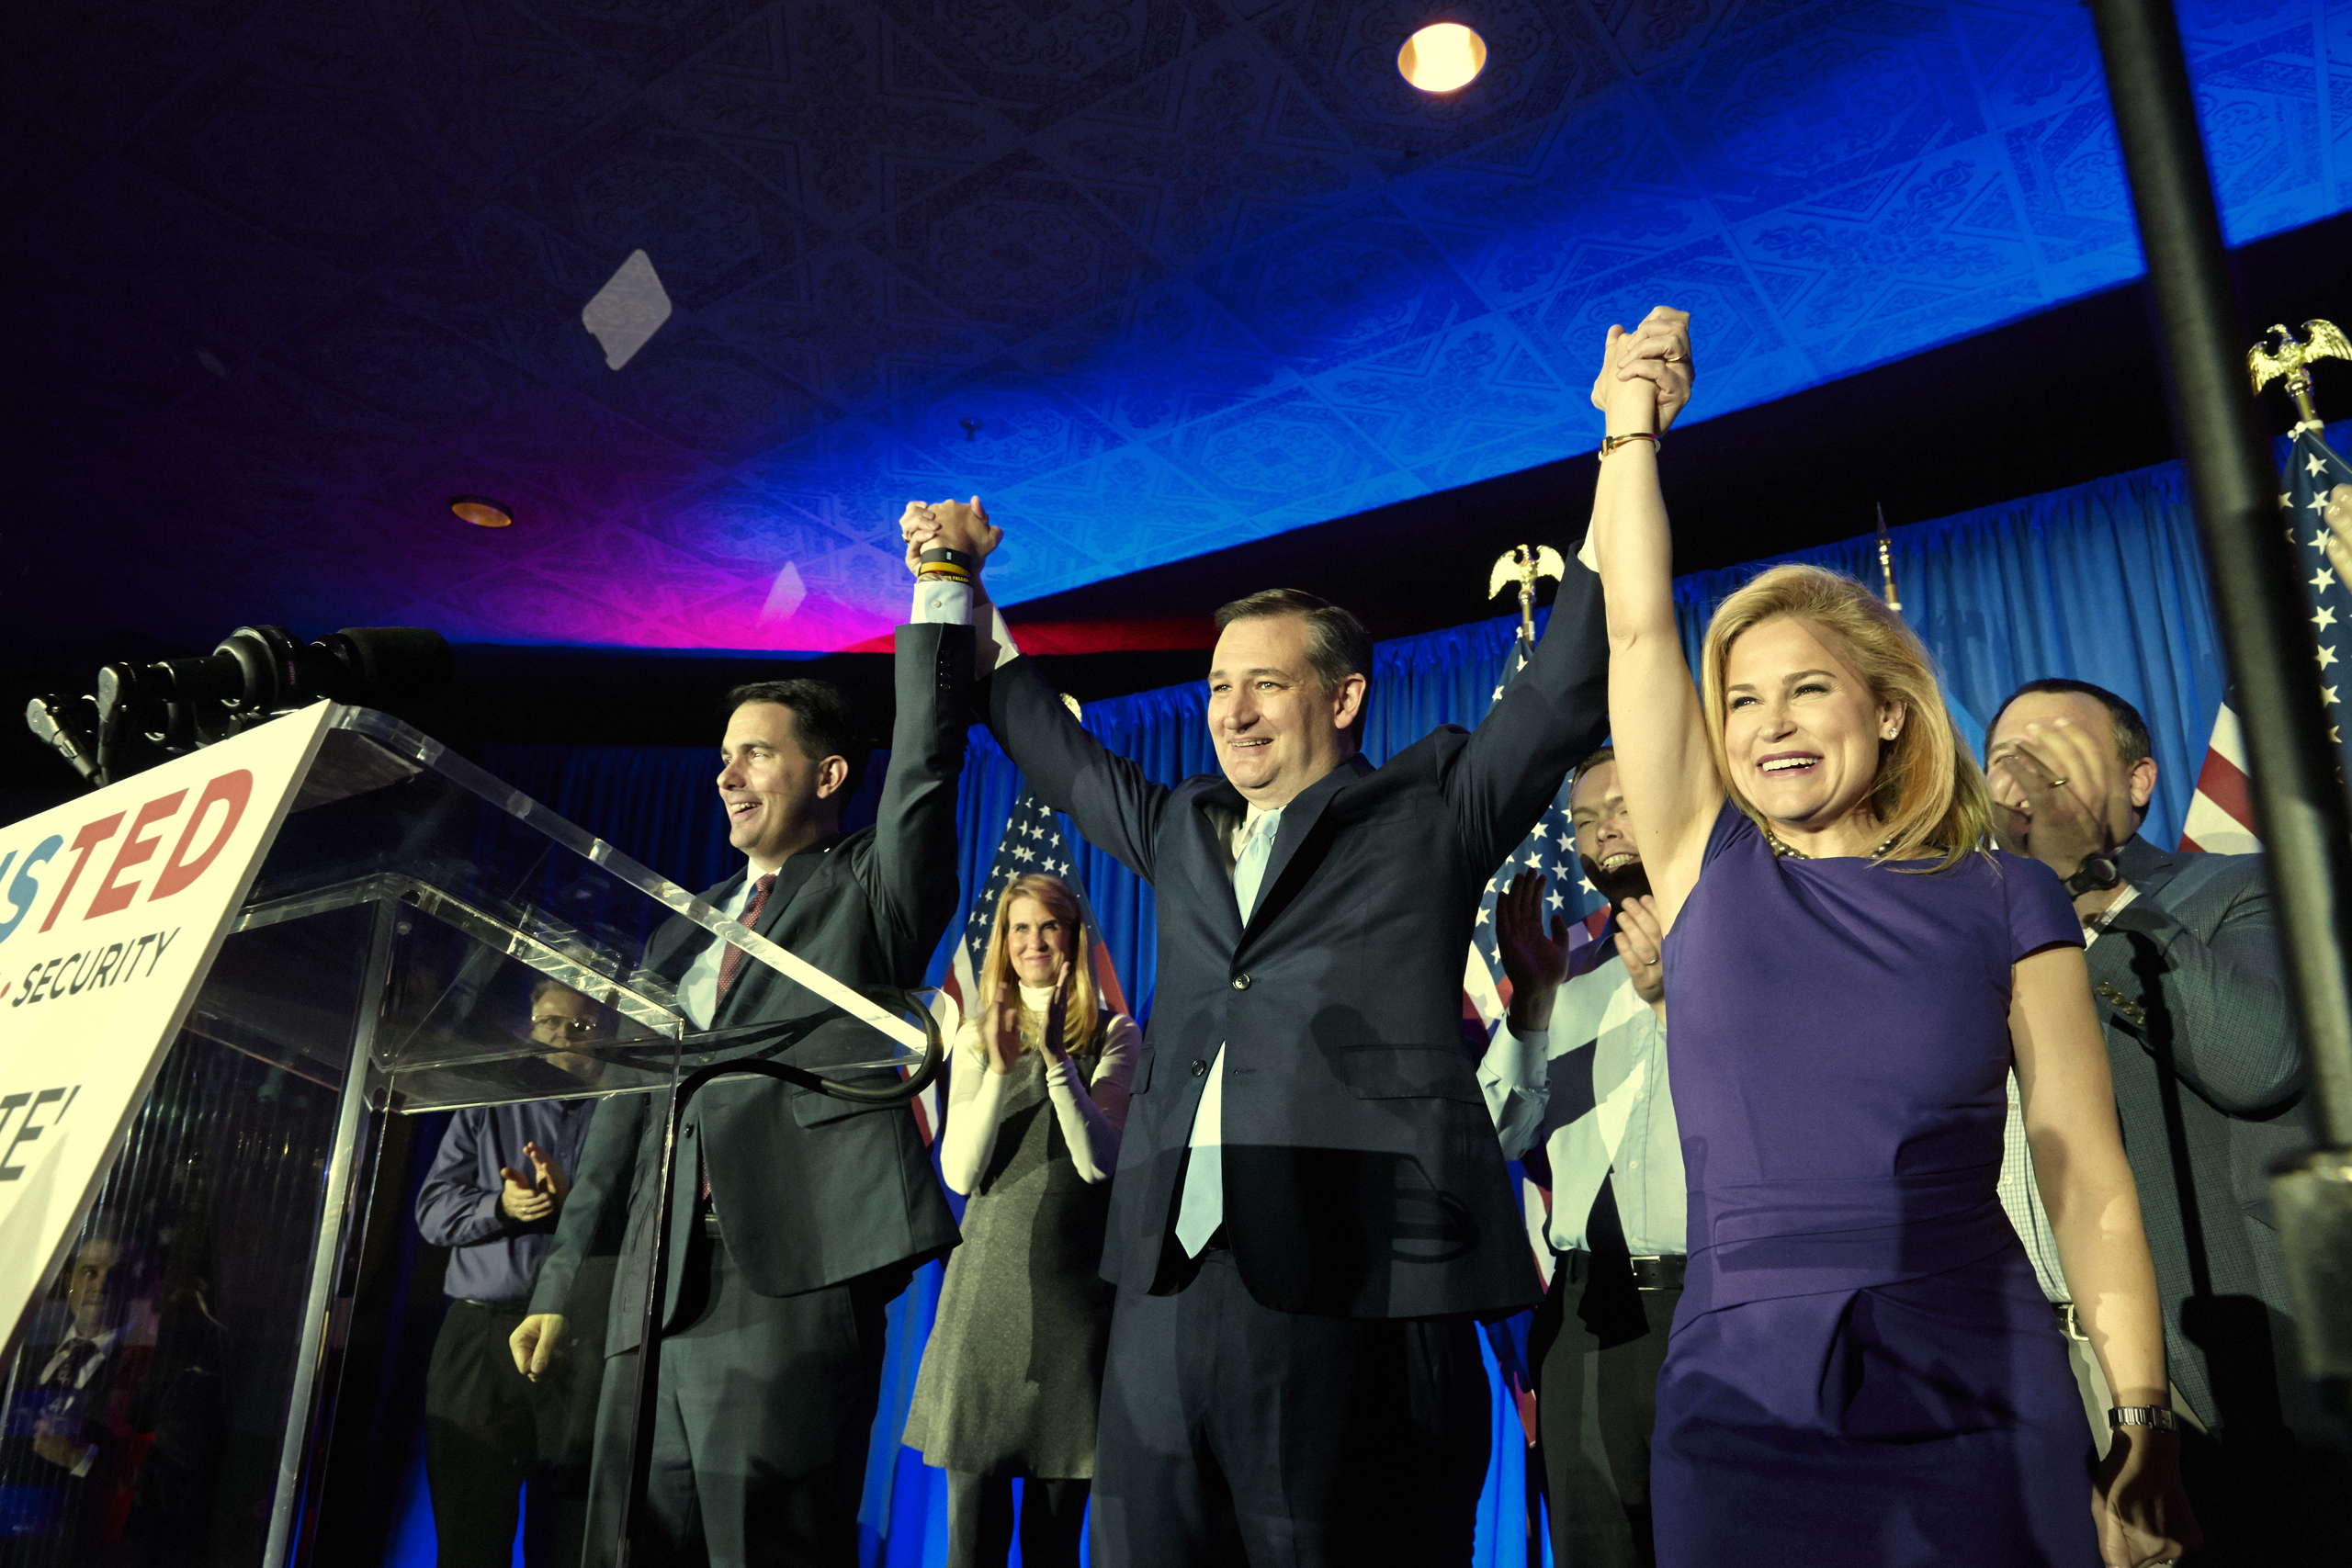 Senator Ted Cruz celebrates winning the Wisconsin primary with his wife Heidi and Governor Scott Walker in Milwaukee on April 5